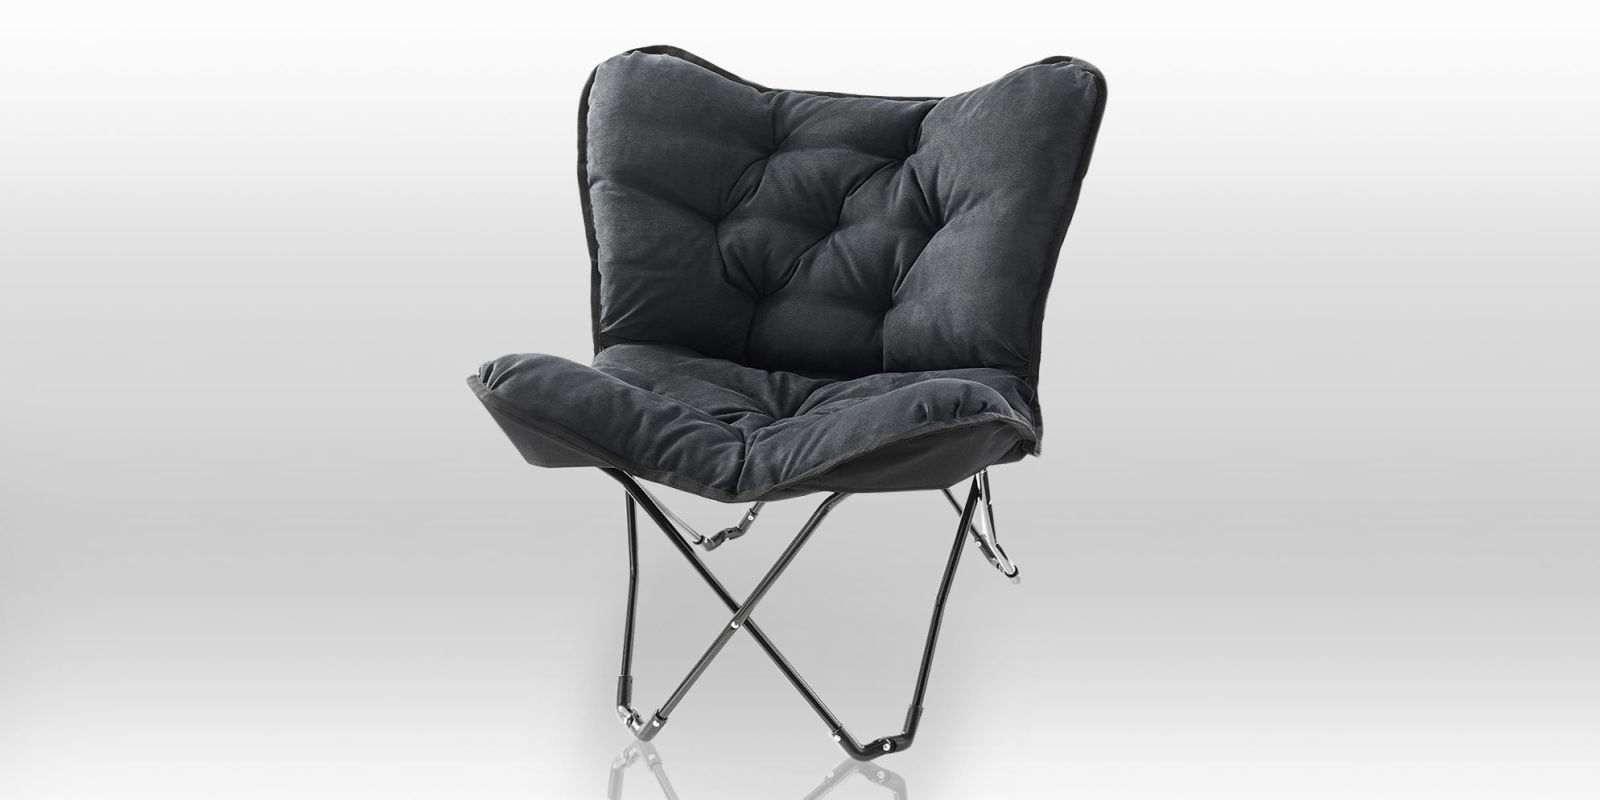 10 Best Butterfly Chairs for Teens 2017 - Best Butterfly ...